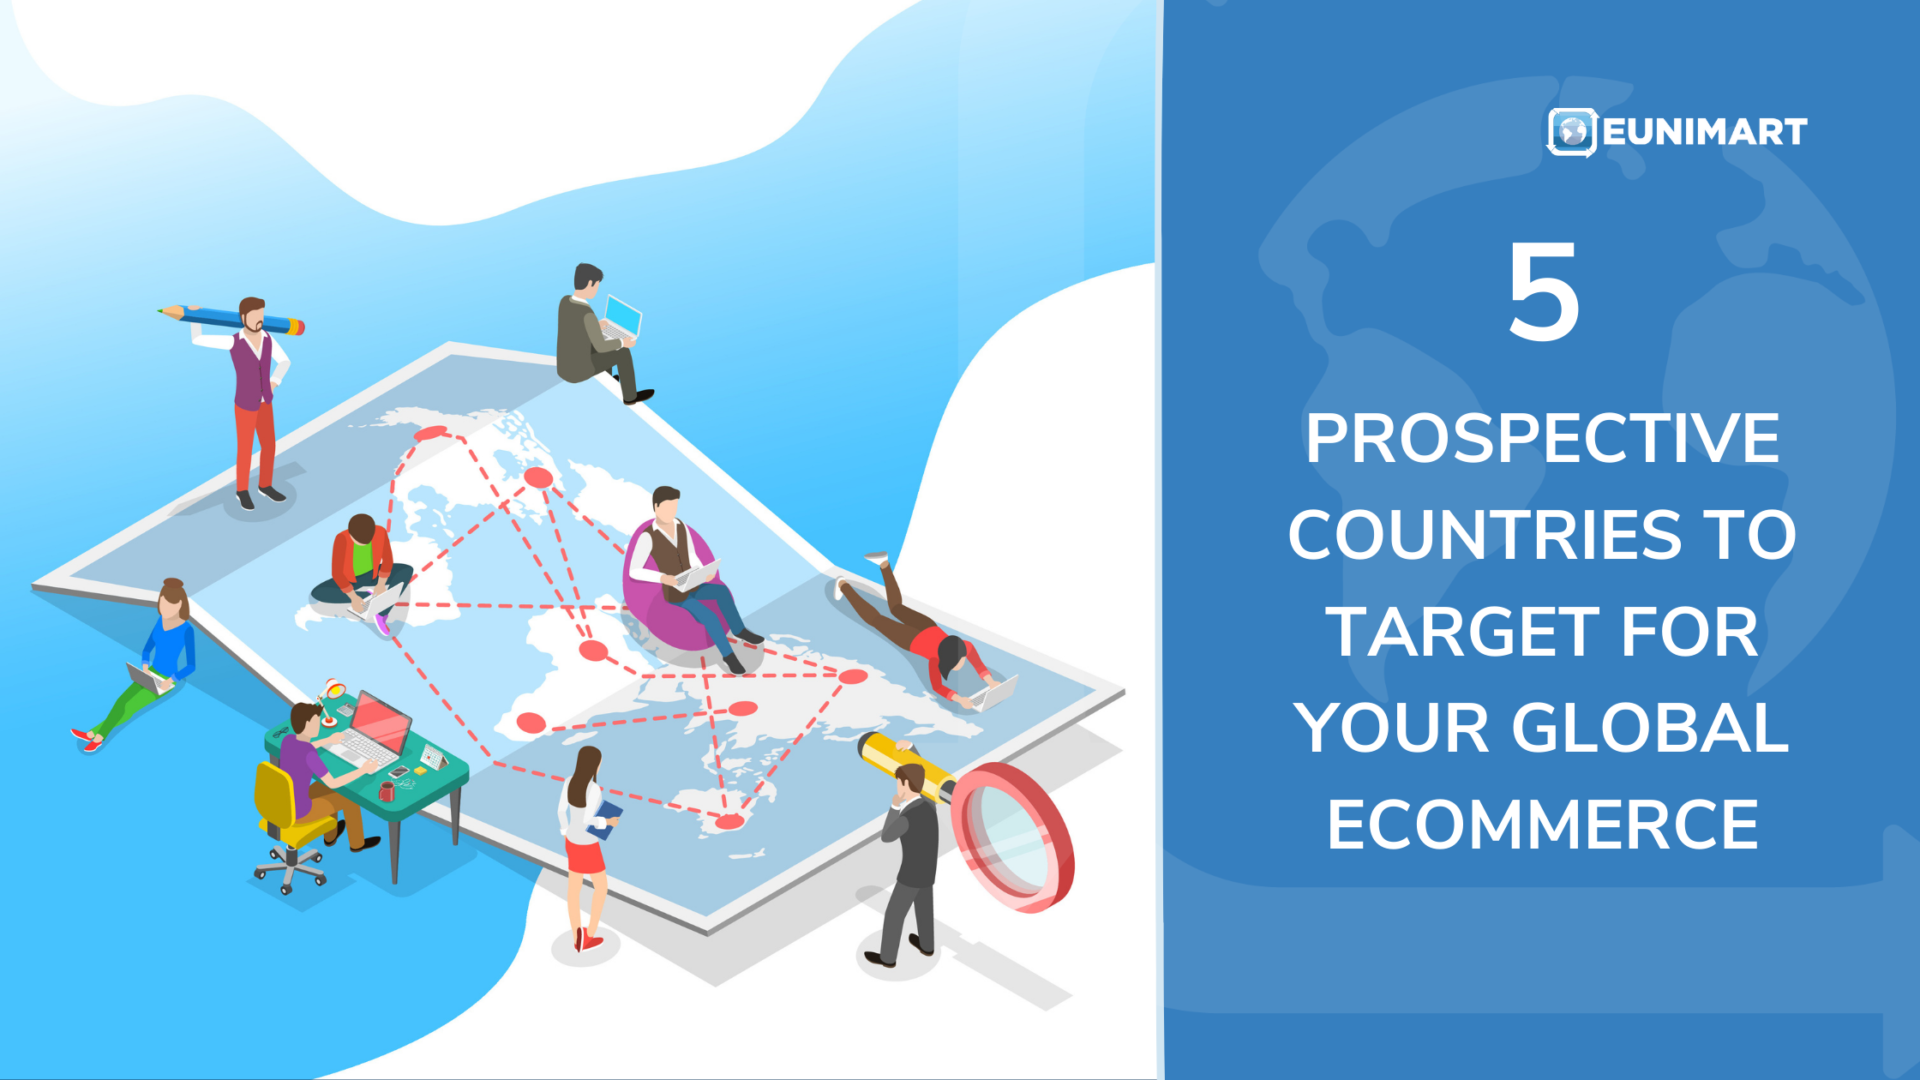 5 PROSPECTIVE COUNTRIES TO TARGET FOR YOUR GLOBAL ECOMMERCE